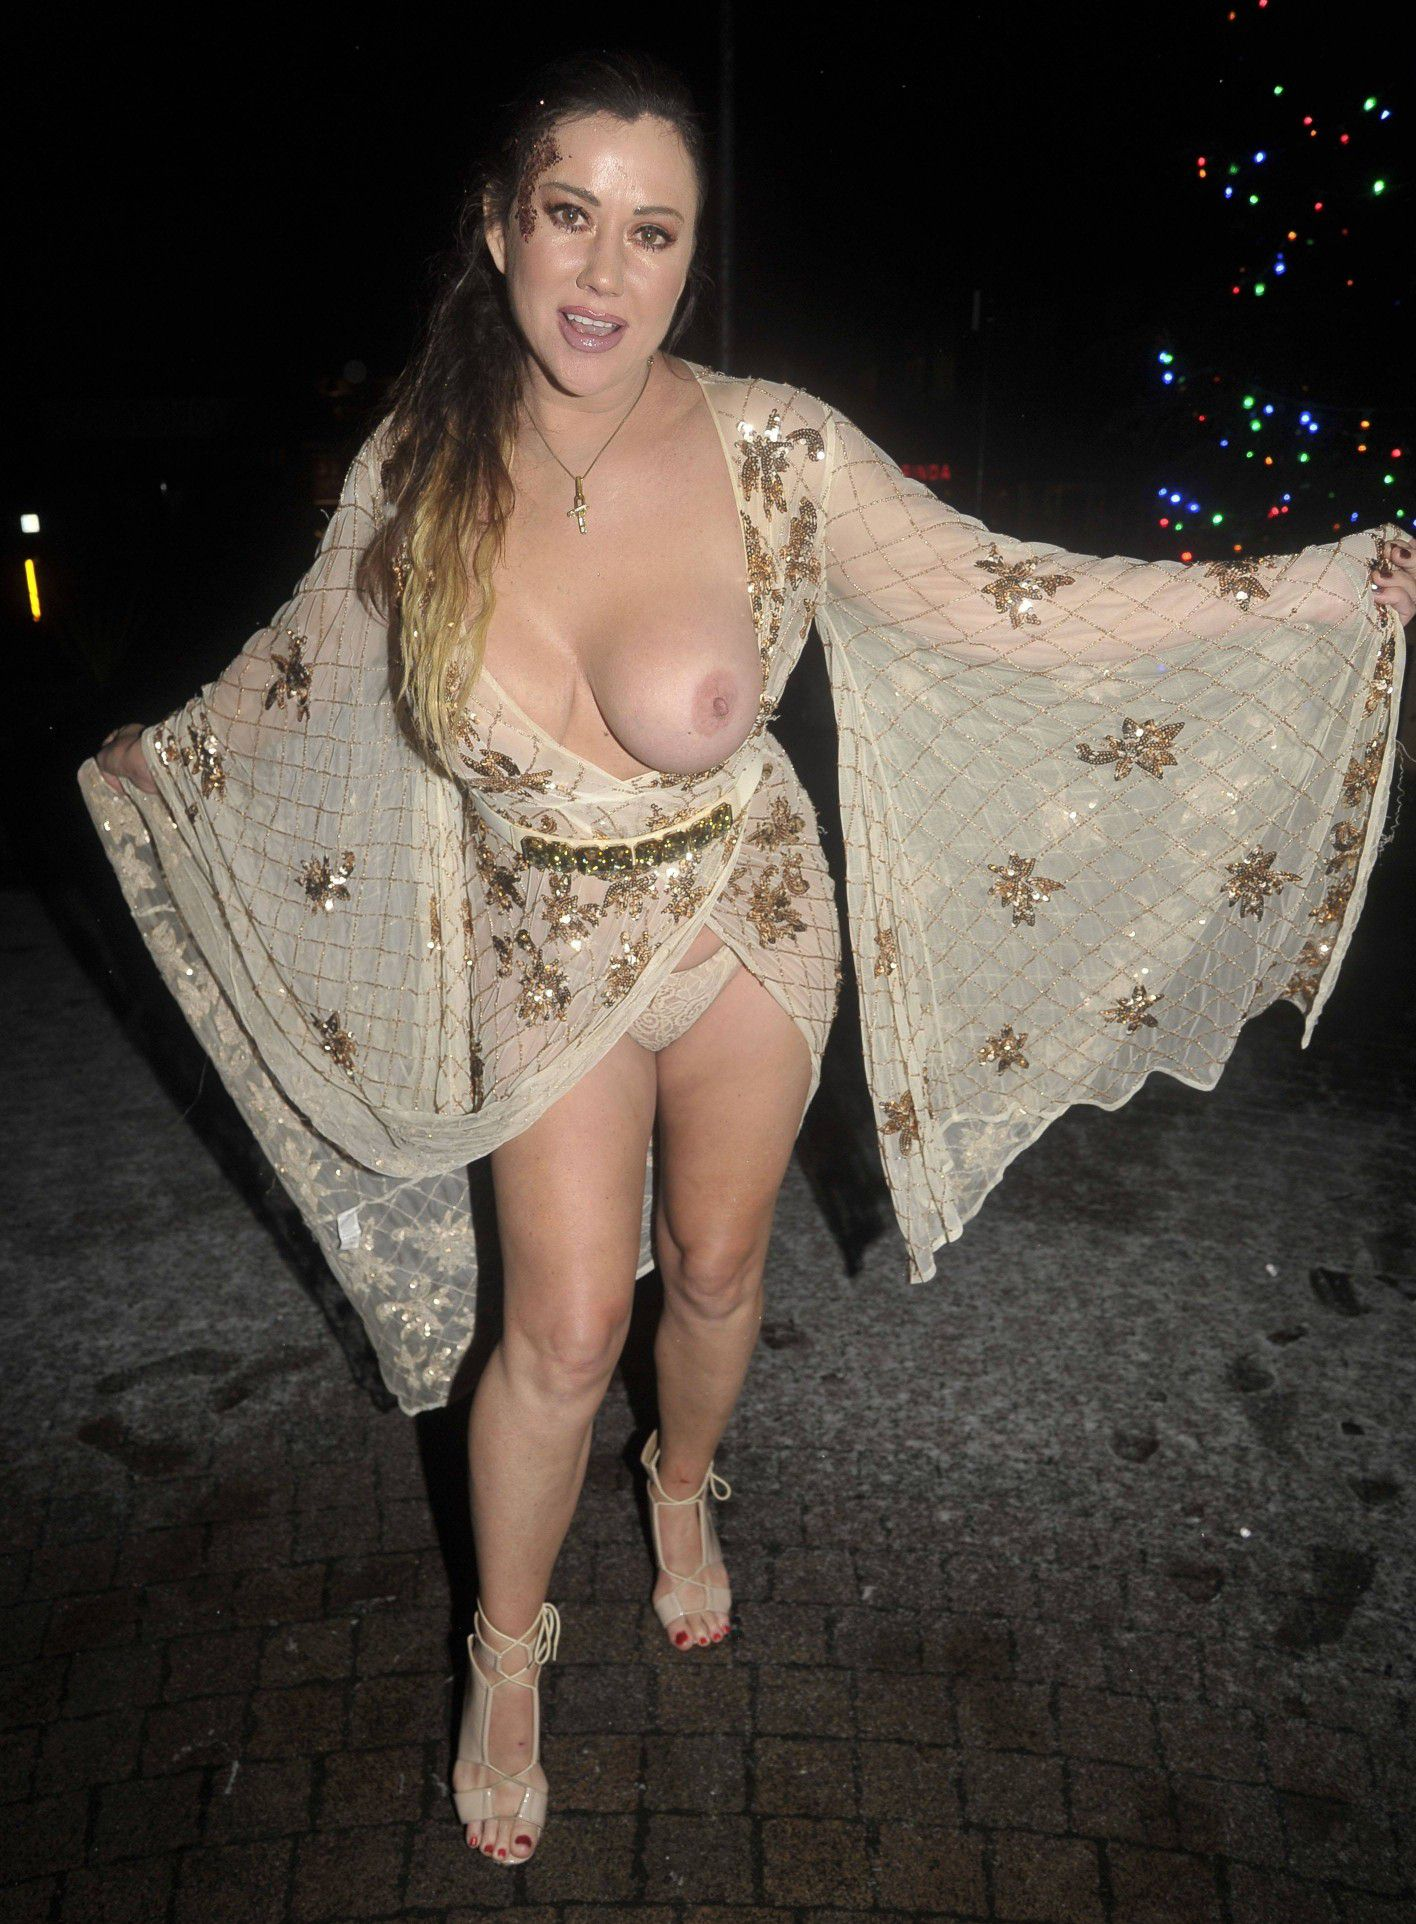 Big Brother Star Lisa Appleton Boob Slip And